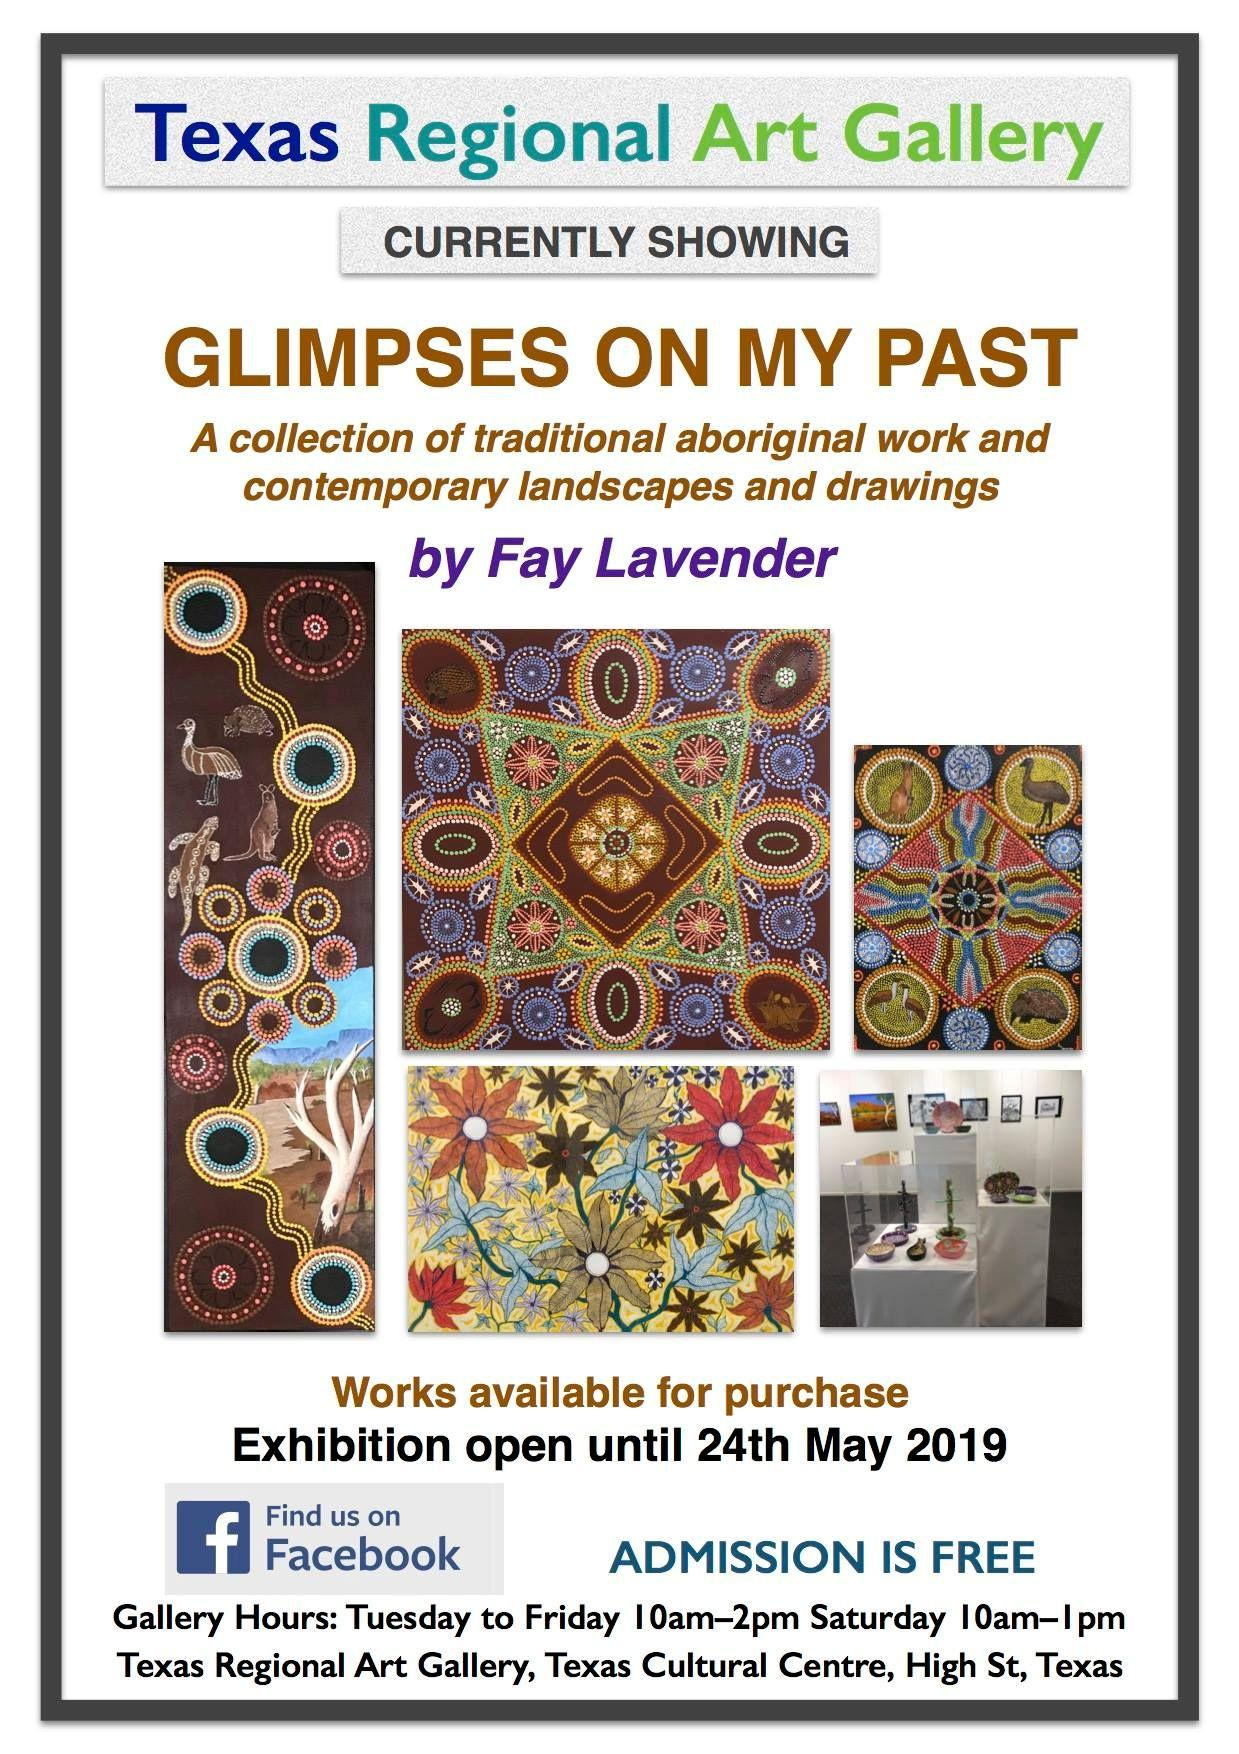 poster for glimpses on my past art exhibition by fay lavendar in texas regional art gallery